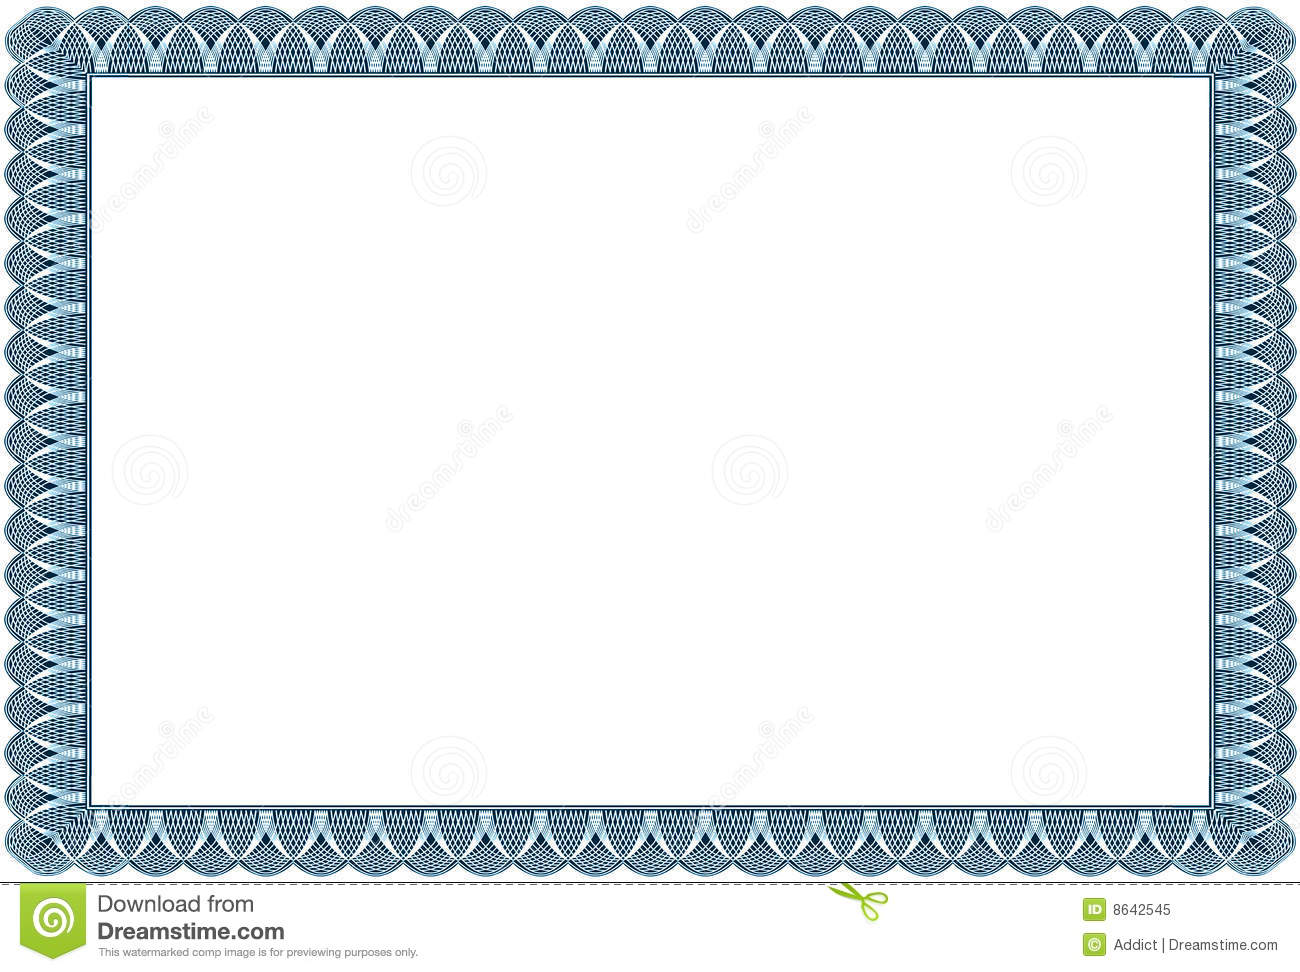 Fancy diploma border images galleries for High school diploma certificate fancy design templates